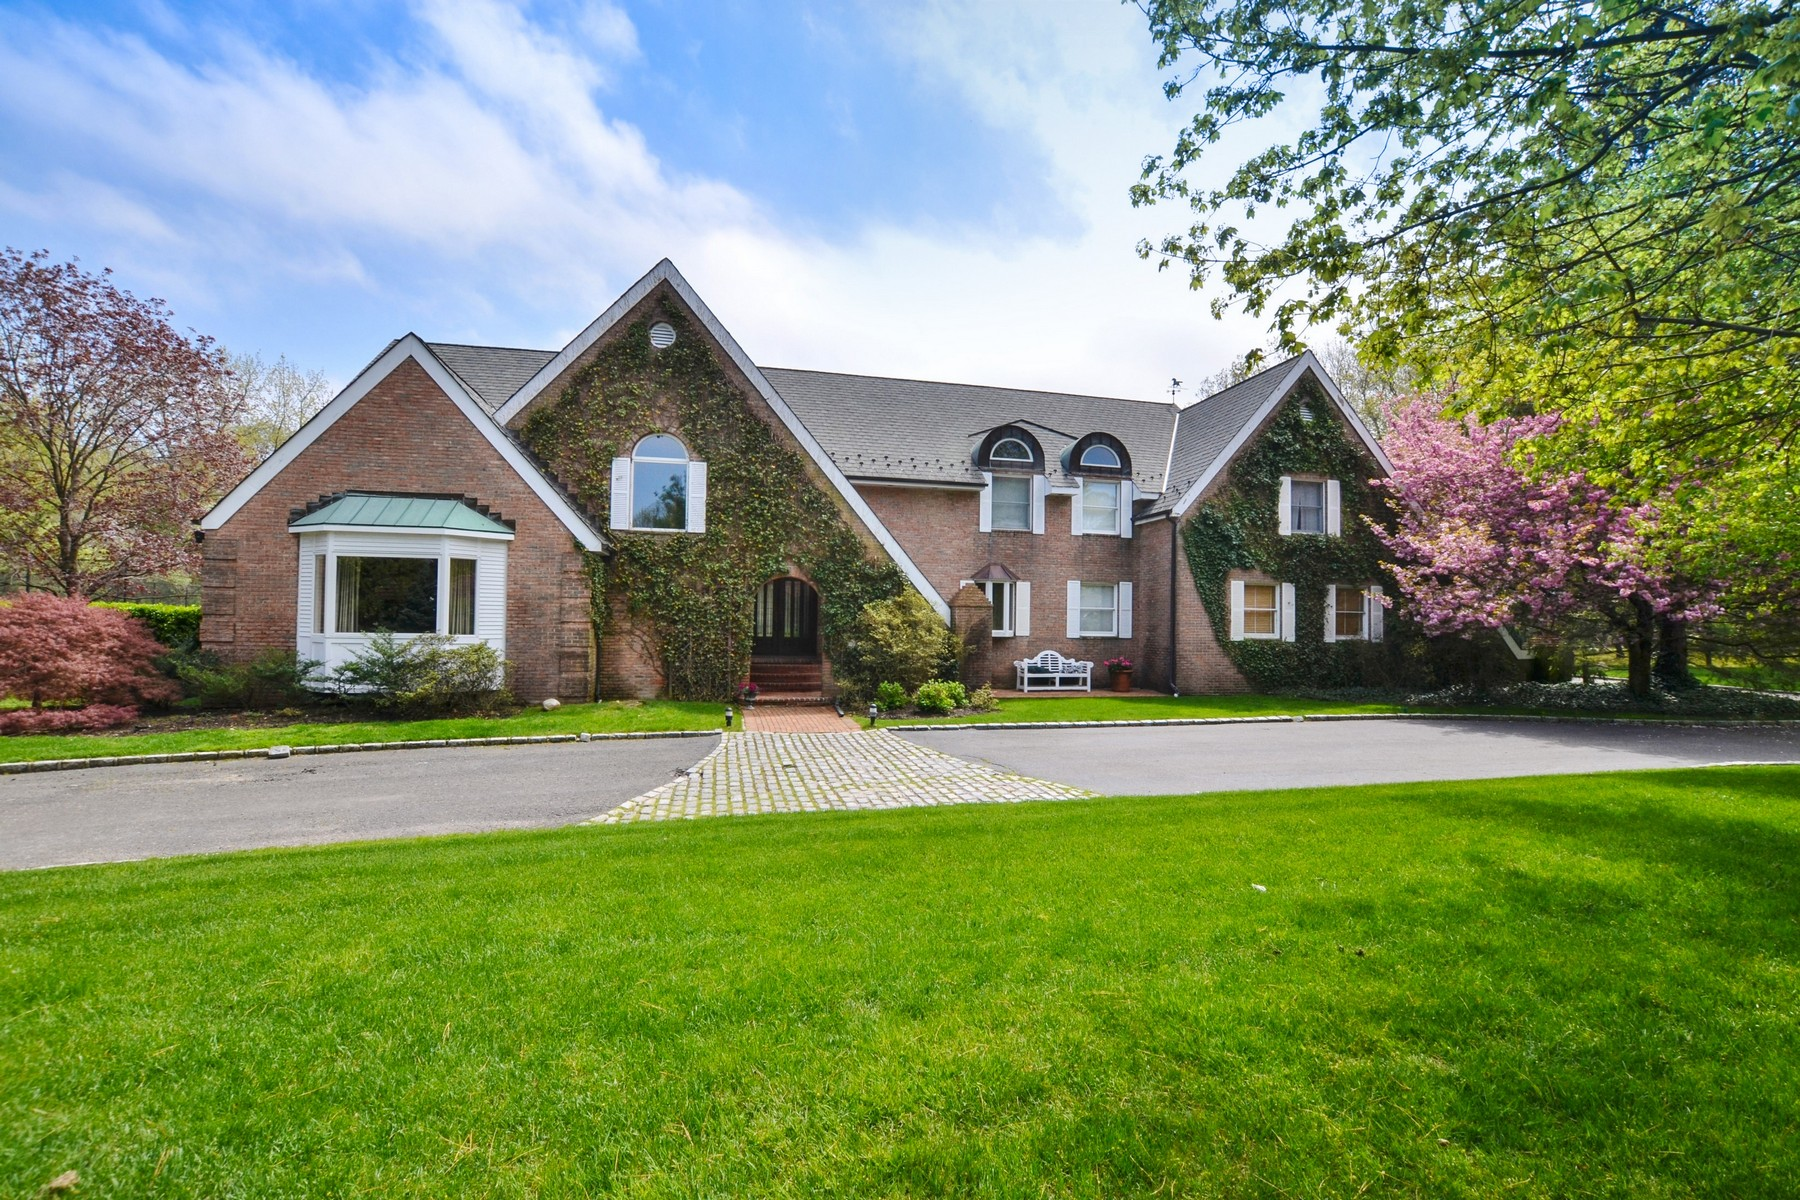 Single Family Home for Sale at Colonial 75 Coves Run Oyster Bay Cove, New York, 11791 United States